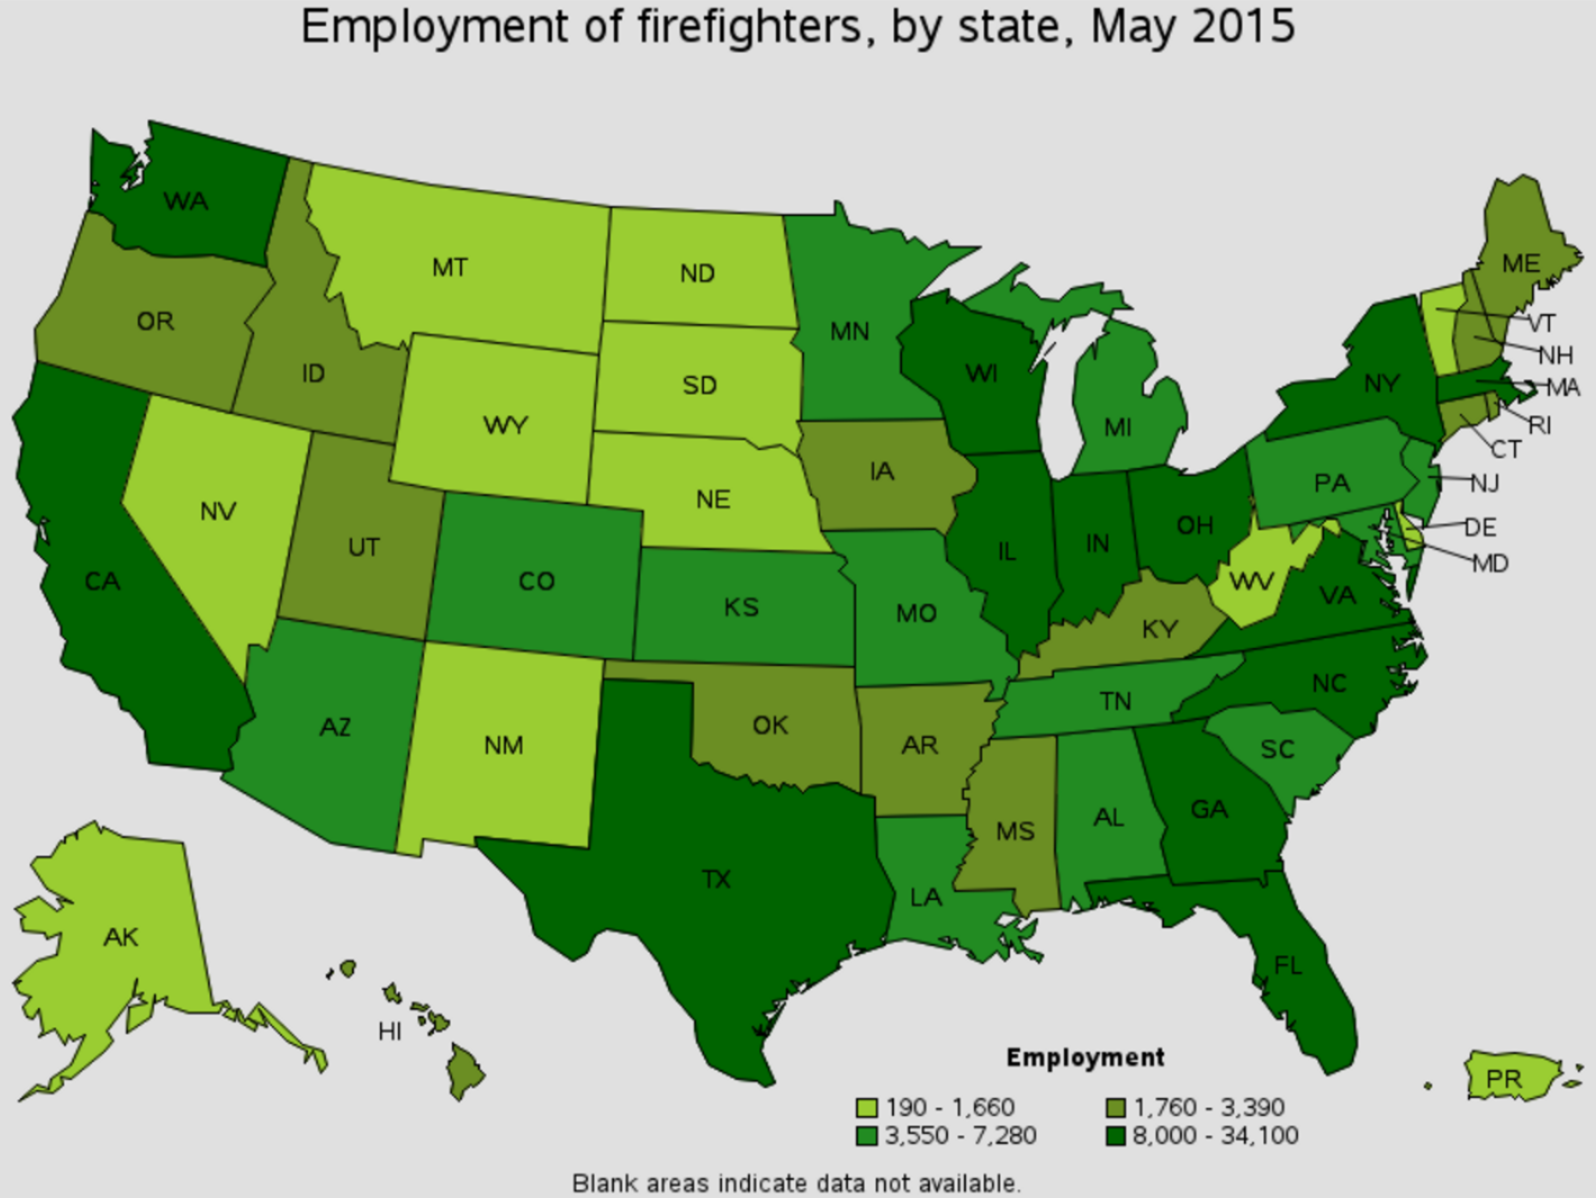 firefighter job outlook by state Zephyrhills Florida